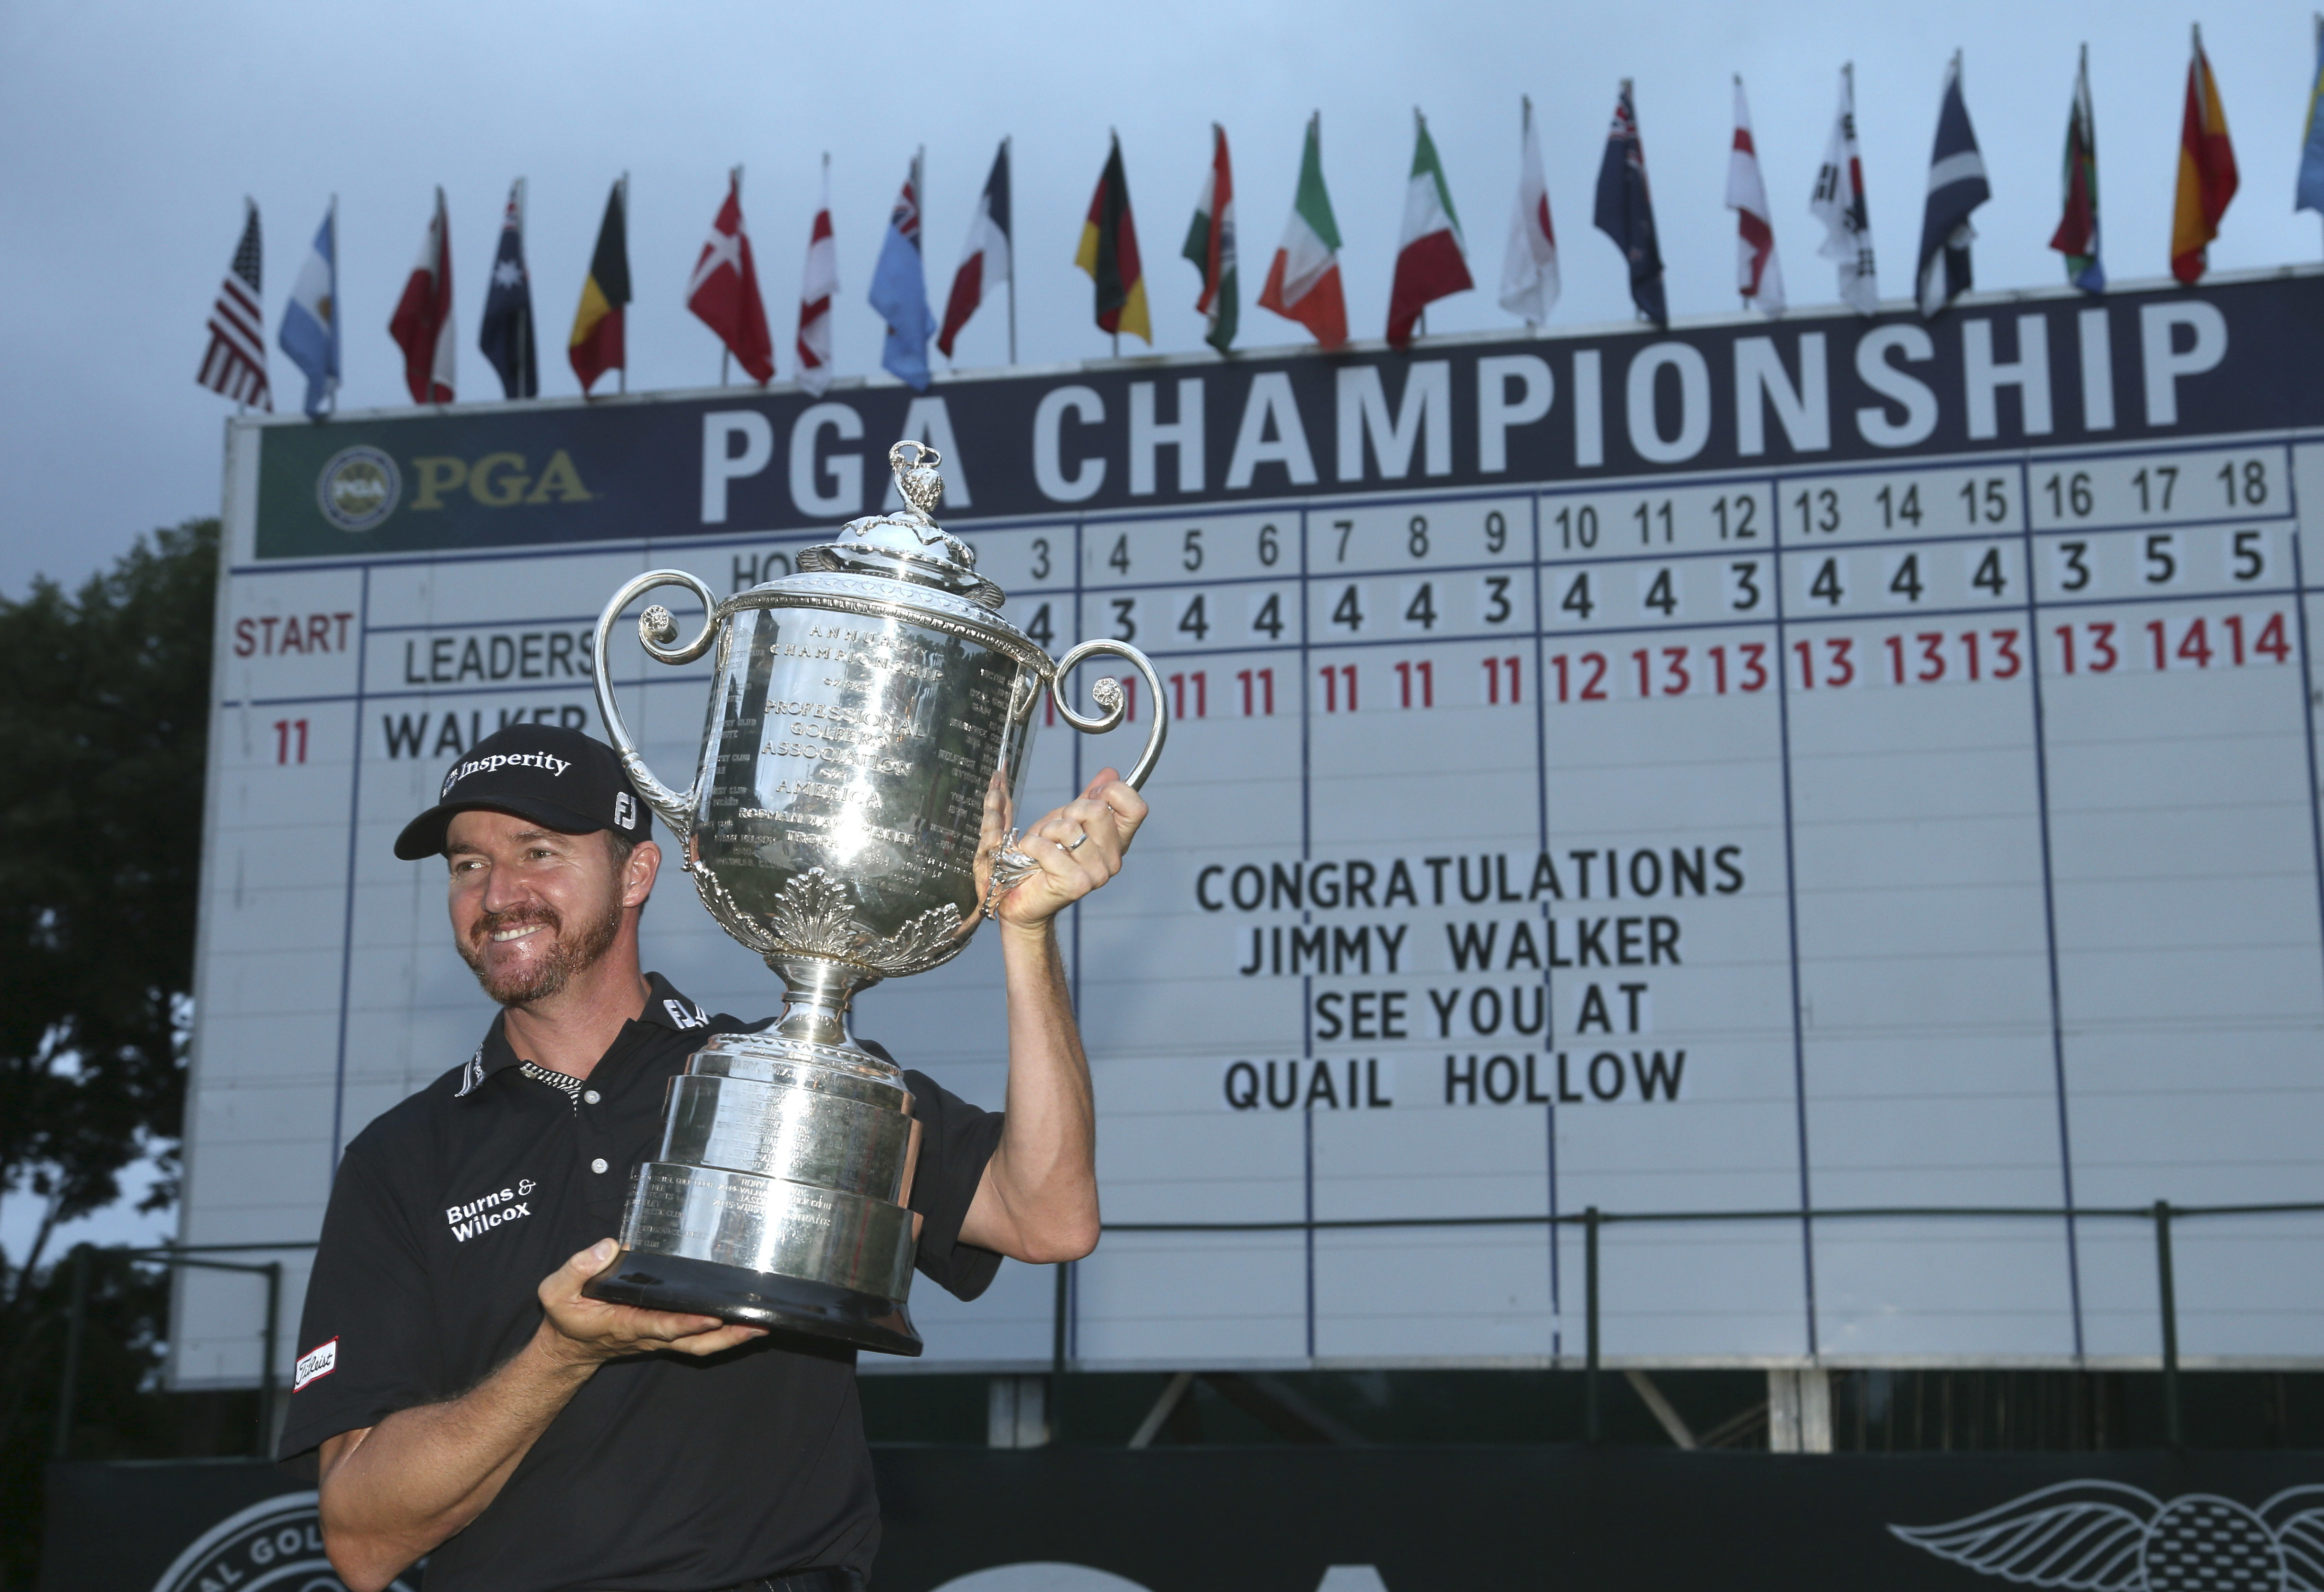 Jimmy Walker poses with the trophy after winning the PGA Championship golf tournament at Baltusrol Golf Club in Springfield, N.J., Sunday, July 31, 2016. (AP Photo/Seth Wenig)